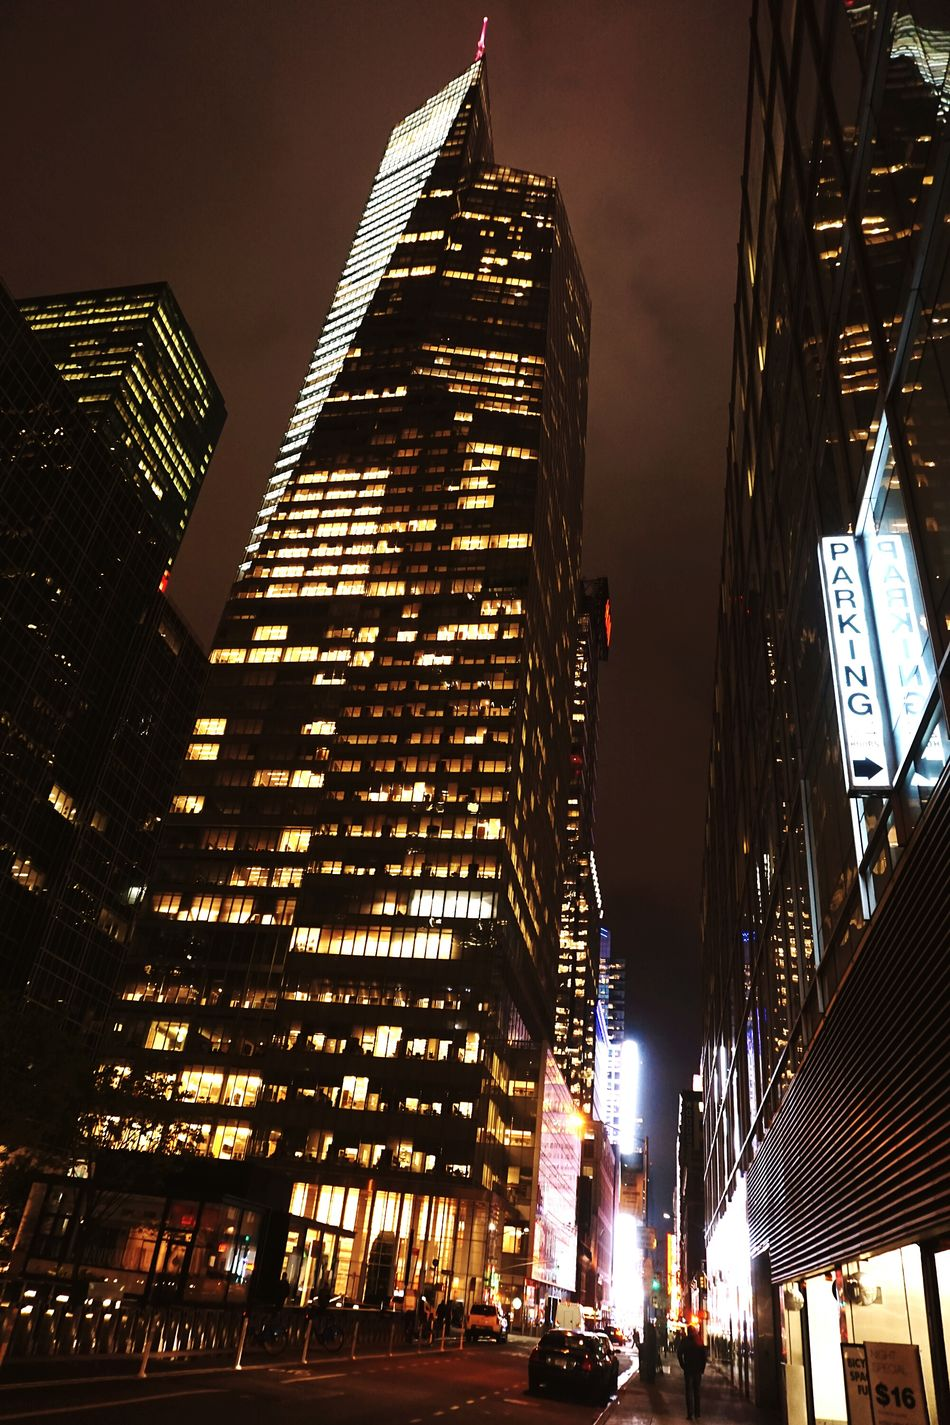 Bankofamerica in NYC. Bankofamericabuilding Bankofamerica500 NYC Photography Nycphotography Nightlights Nightphotography Nightshot Architecture Skyscraper Built Structure Illuminated City Low Angle View Night Modern Architecture Tall - High Diminishing Perspective